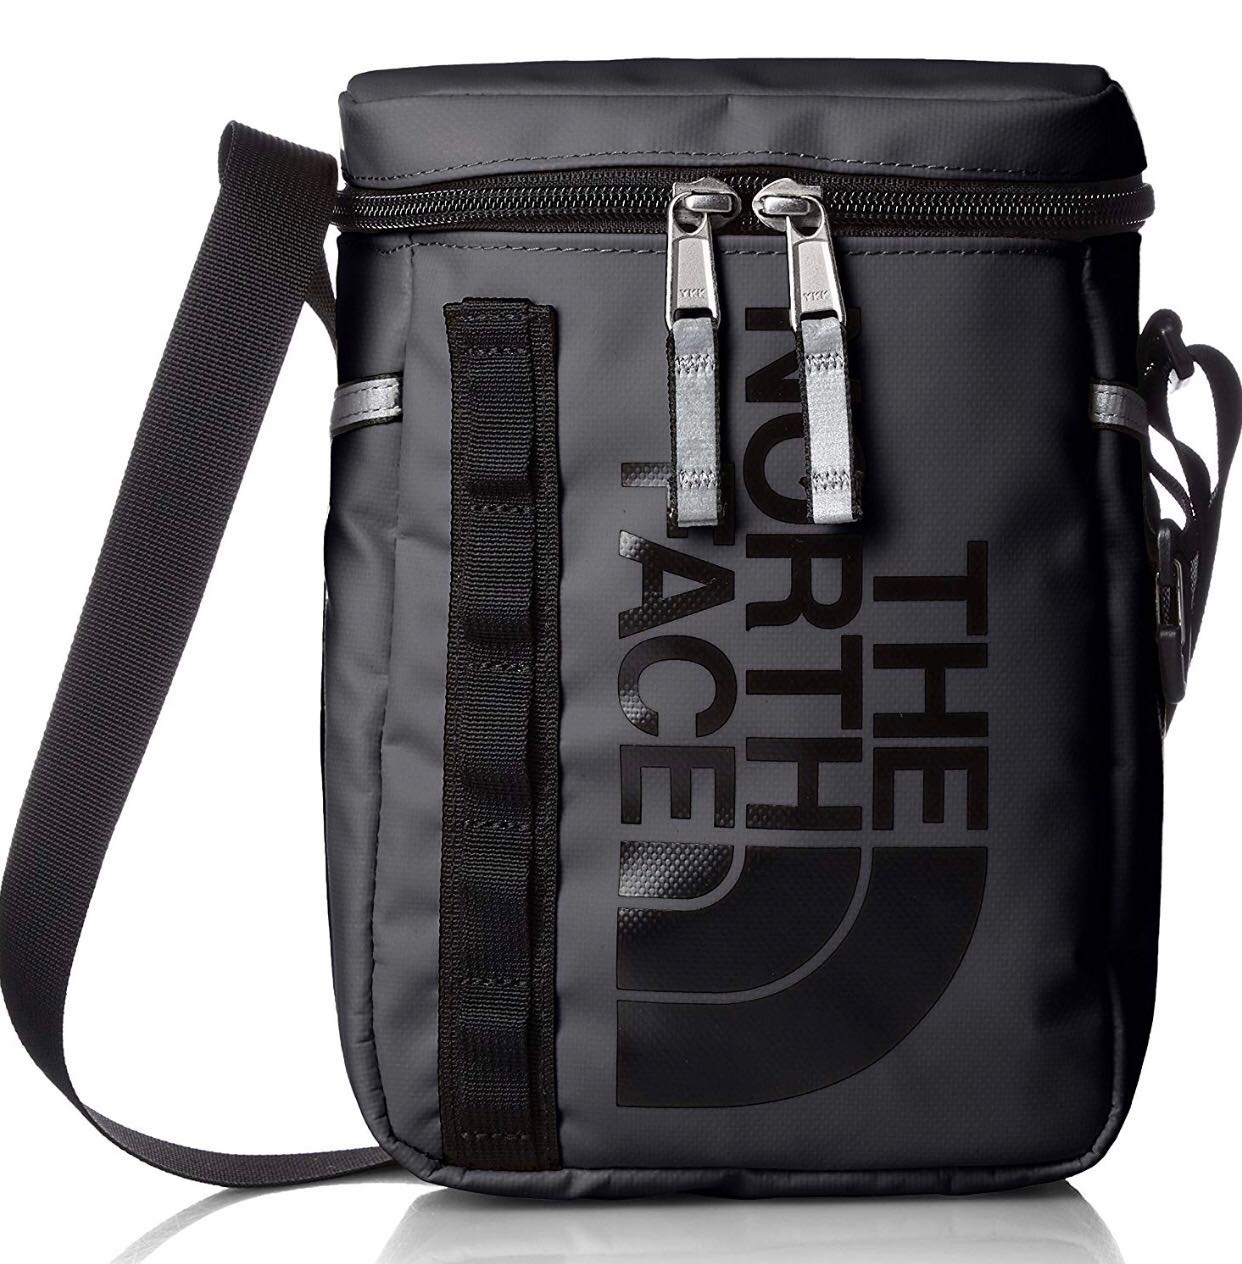 3d1fcba828 The North Face BC FUSE BOX POUCH / SLING BAG, Men's Fashion, Bags &  Wallets, Sling Bags on Carousell